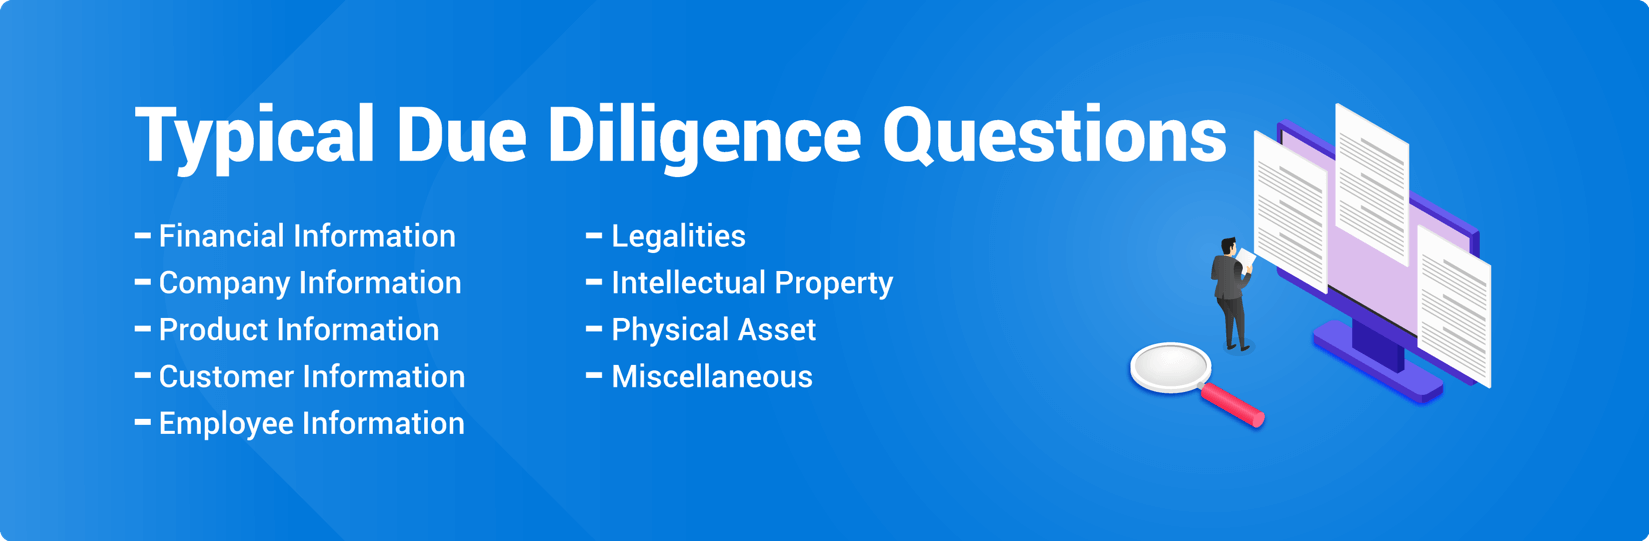 Typical due diligence questions